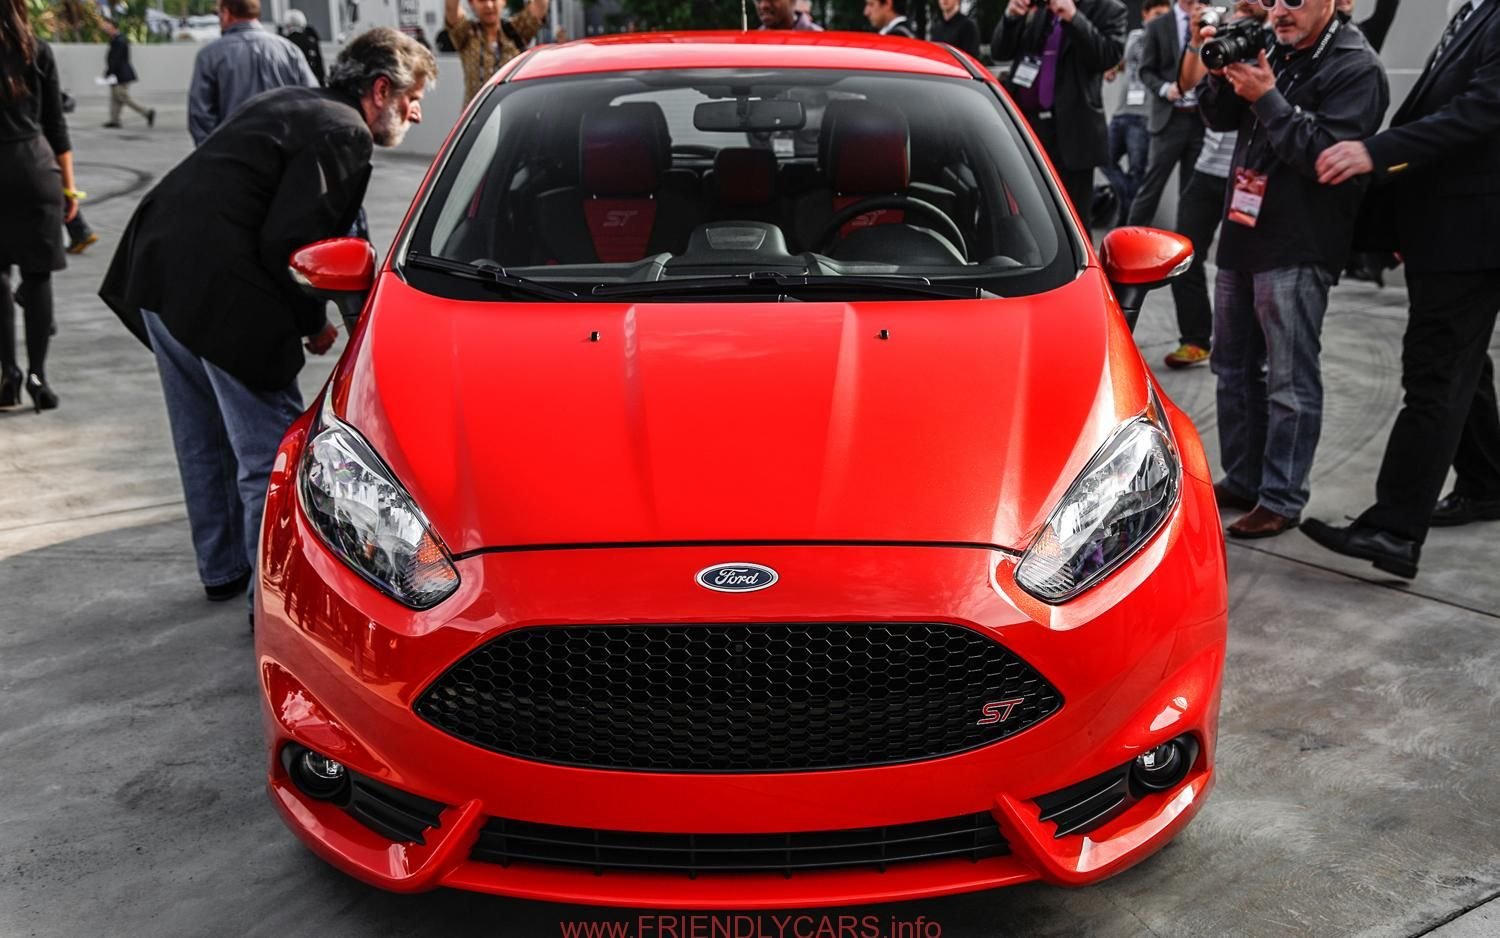 Cool Ford Fiesta 2014 Sedan Red Car Images Hd The All New Ford